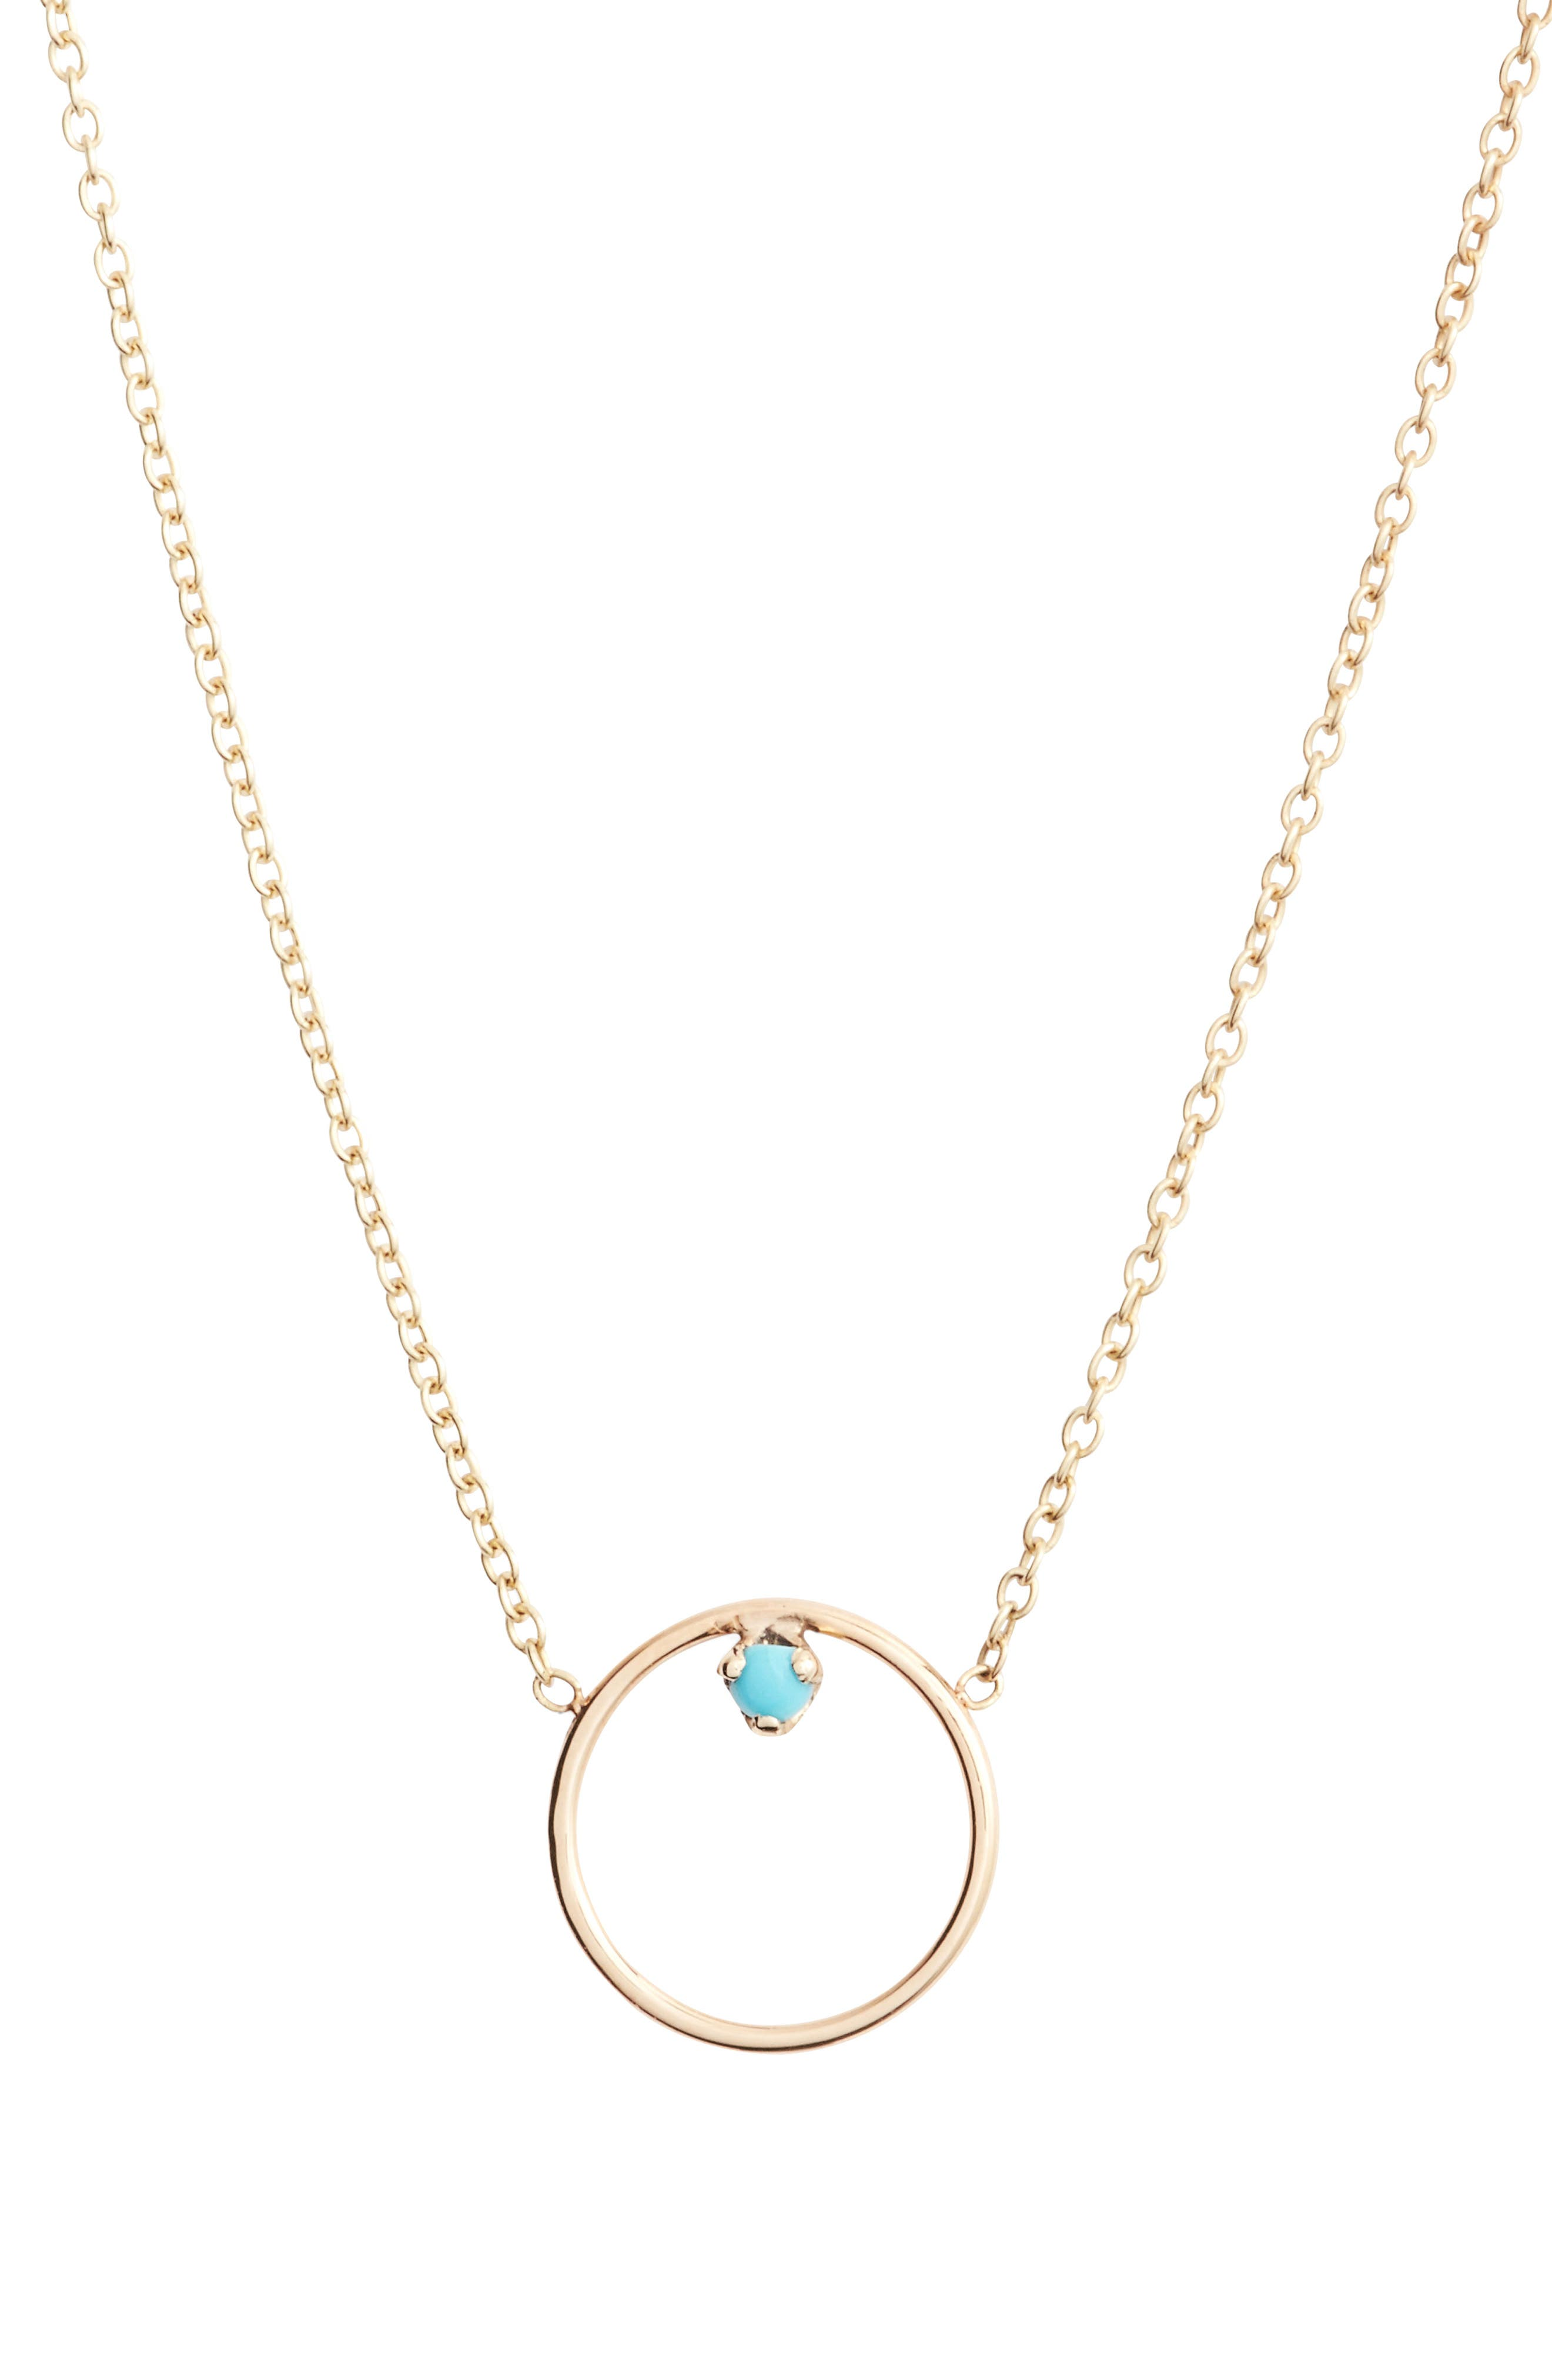 Turquoise Circle Pendant Necklace,                         Main,                         color, Yellow Gold/ Turquoise